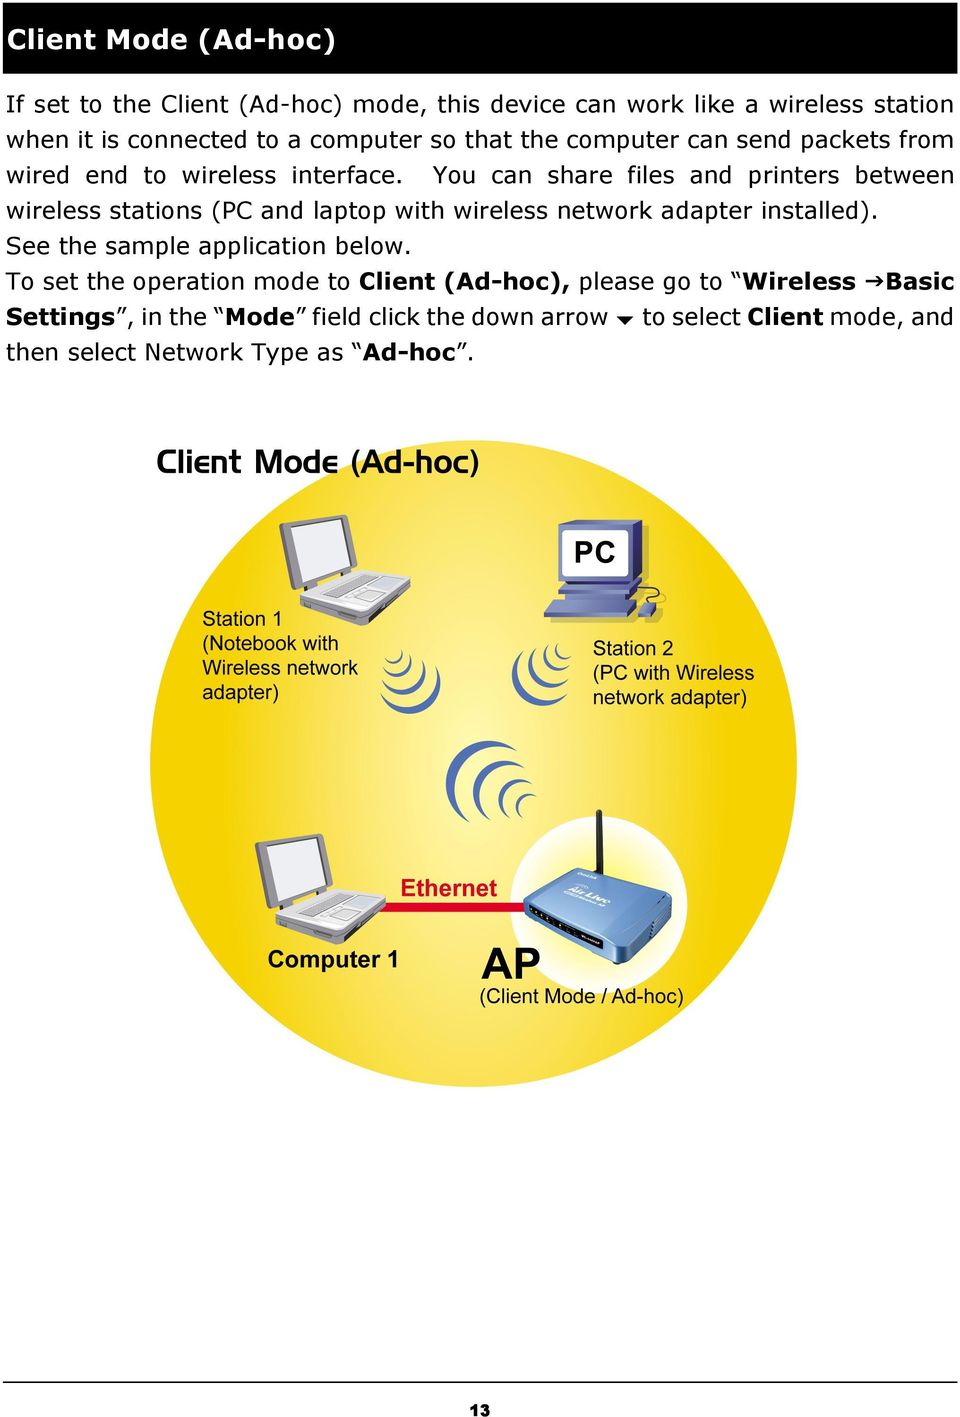 You can share files and printers between wireless stations (PC and laptop with wireless network adapter installed).